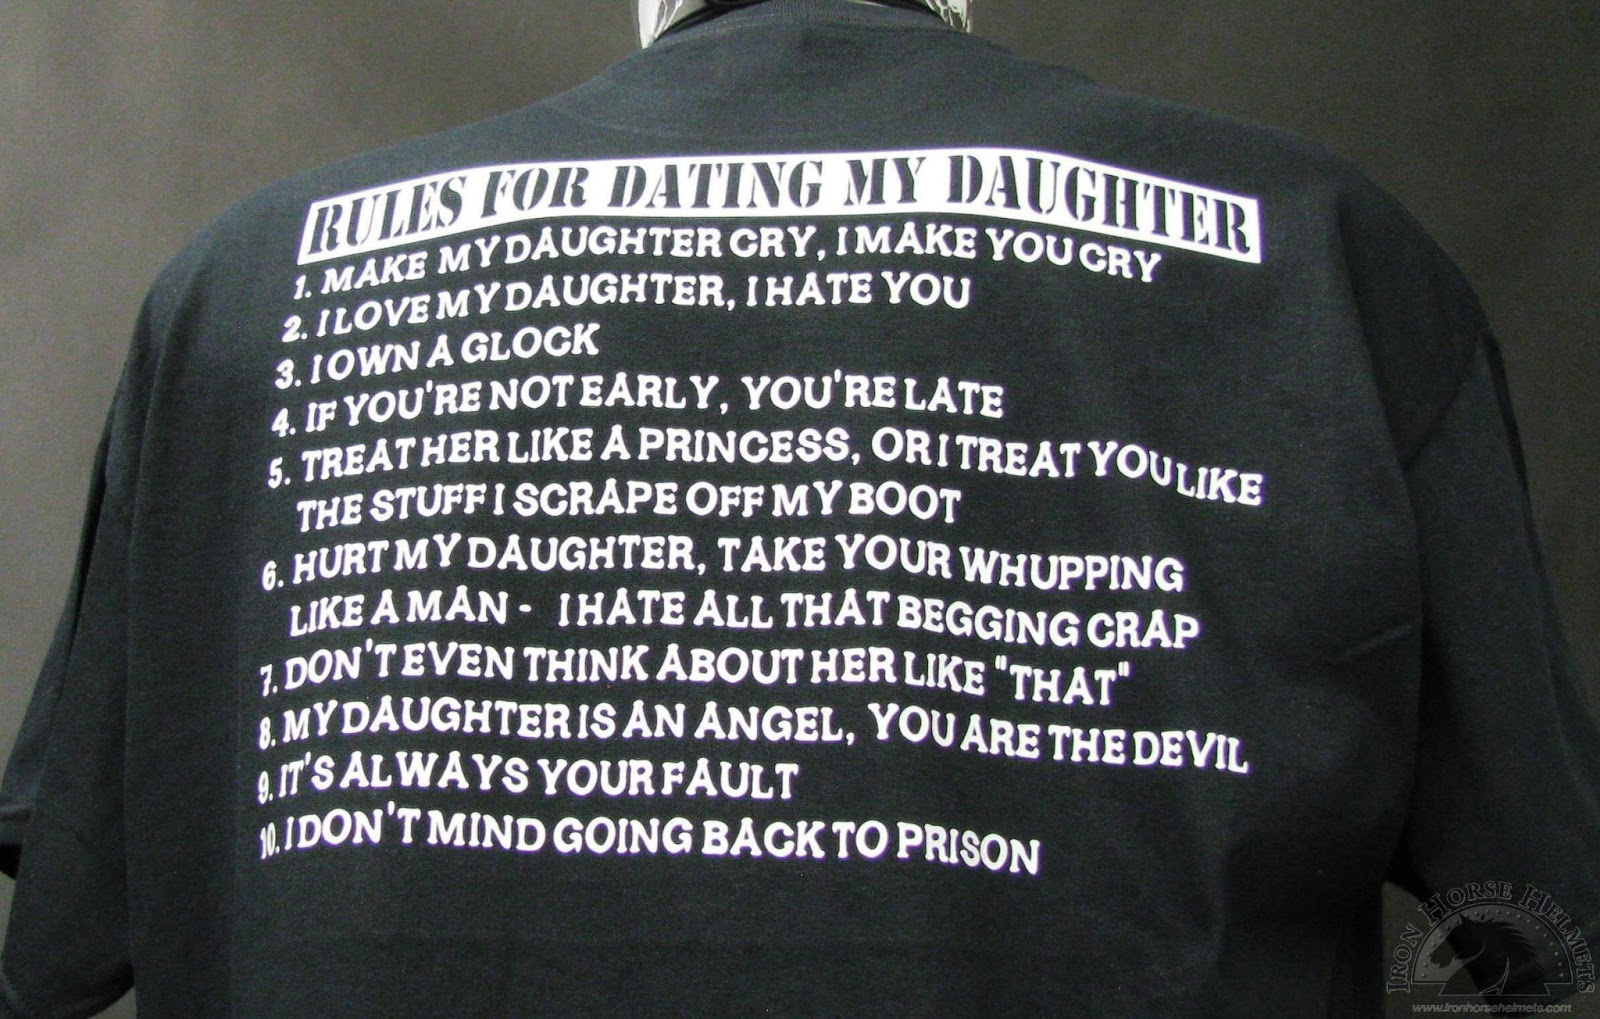 Ranger Rules For Dating My Daughter